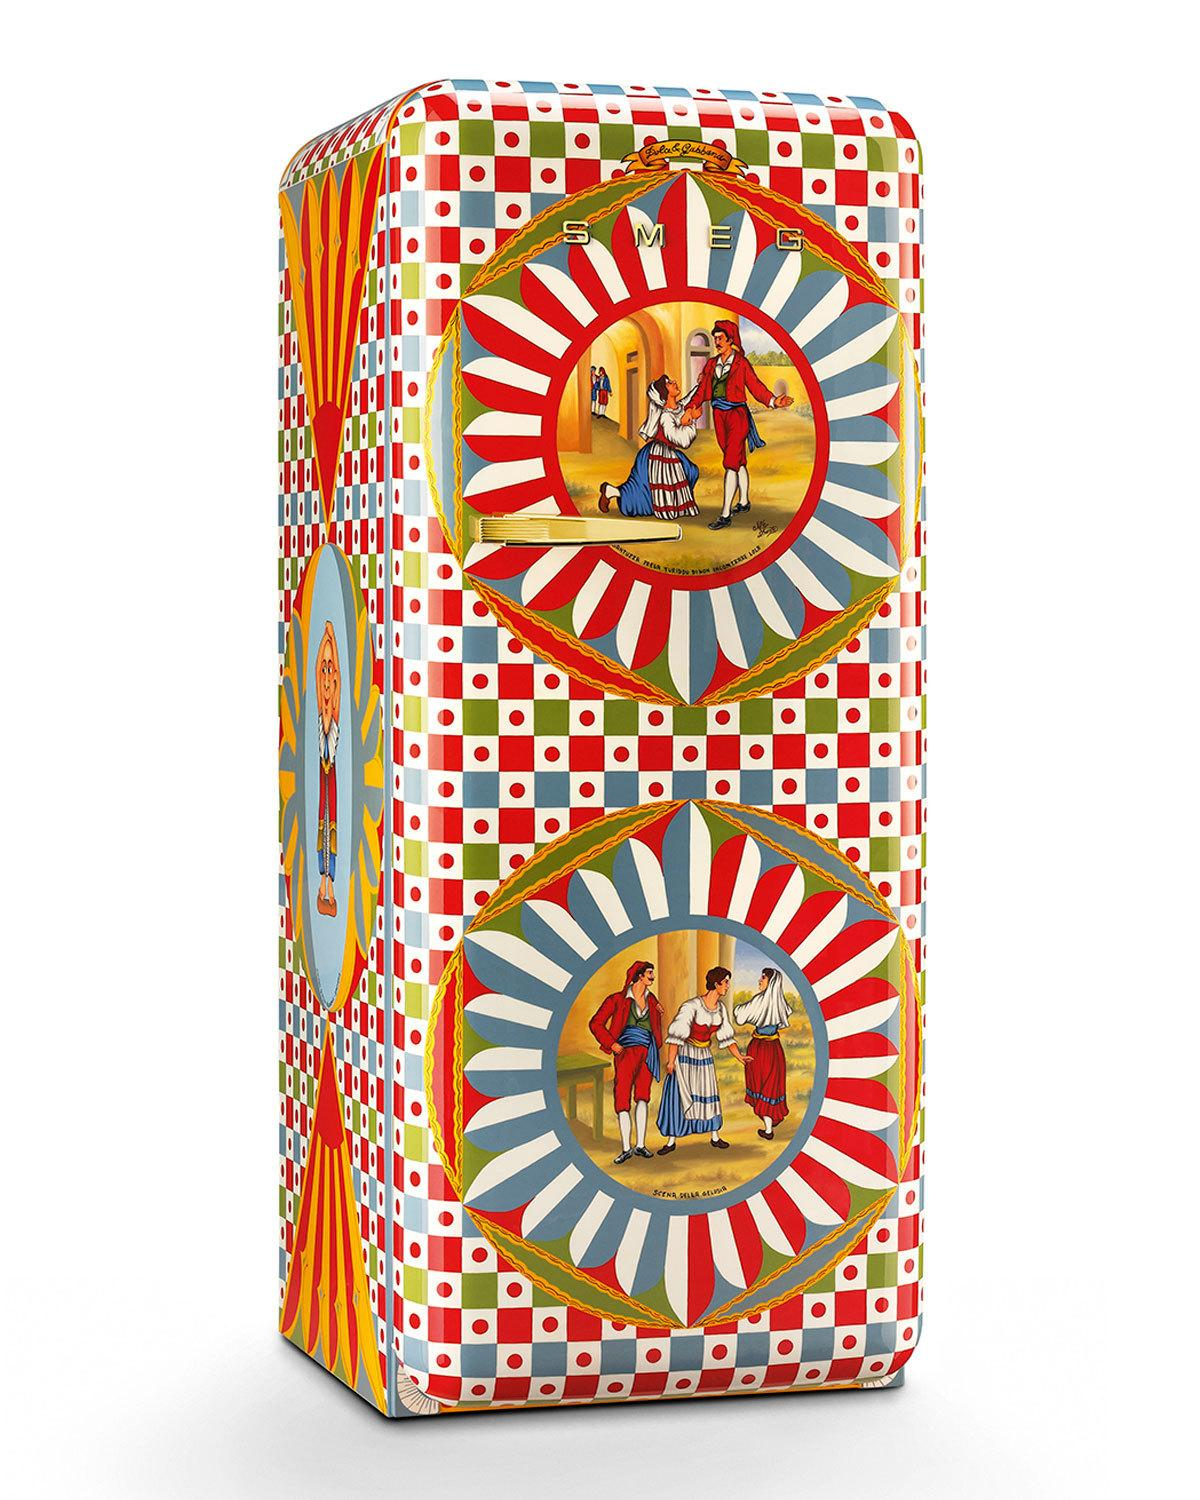 Dolce&Gabbana X SMEG - House of Monsters Fridge